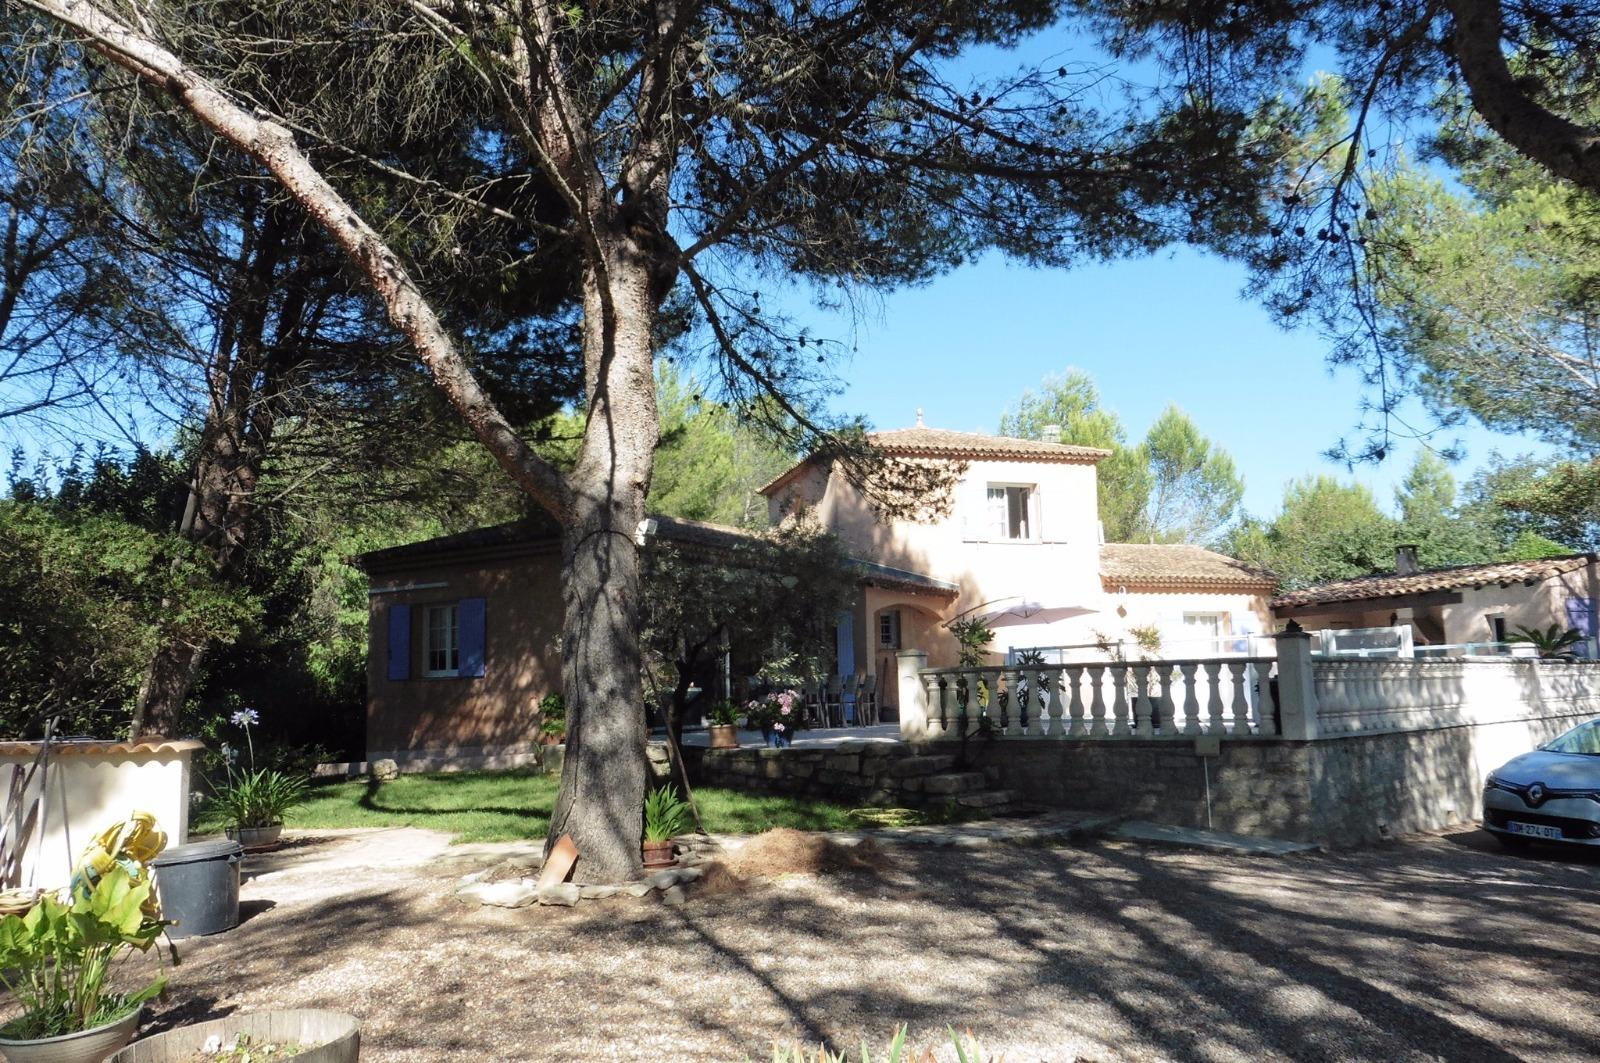 Akor immobilier agence immobili re quissac et sommi res for Agence immobiliere 86